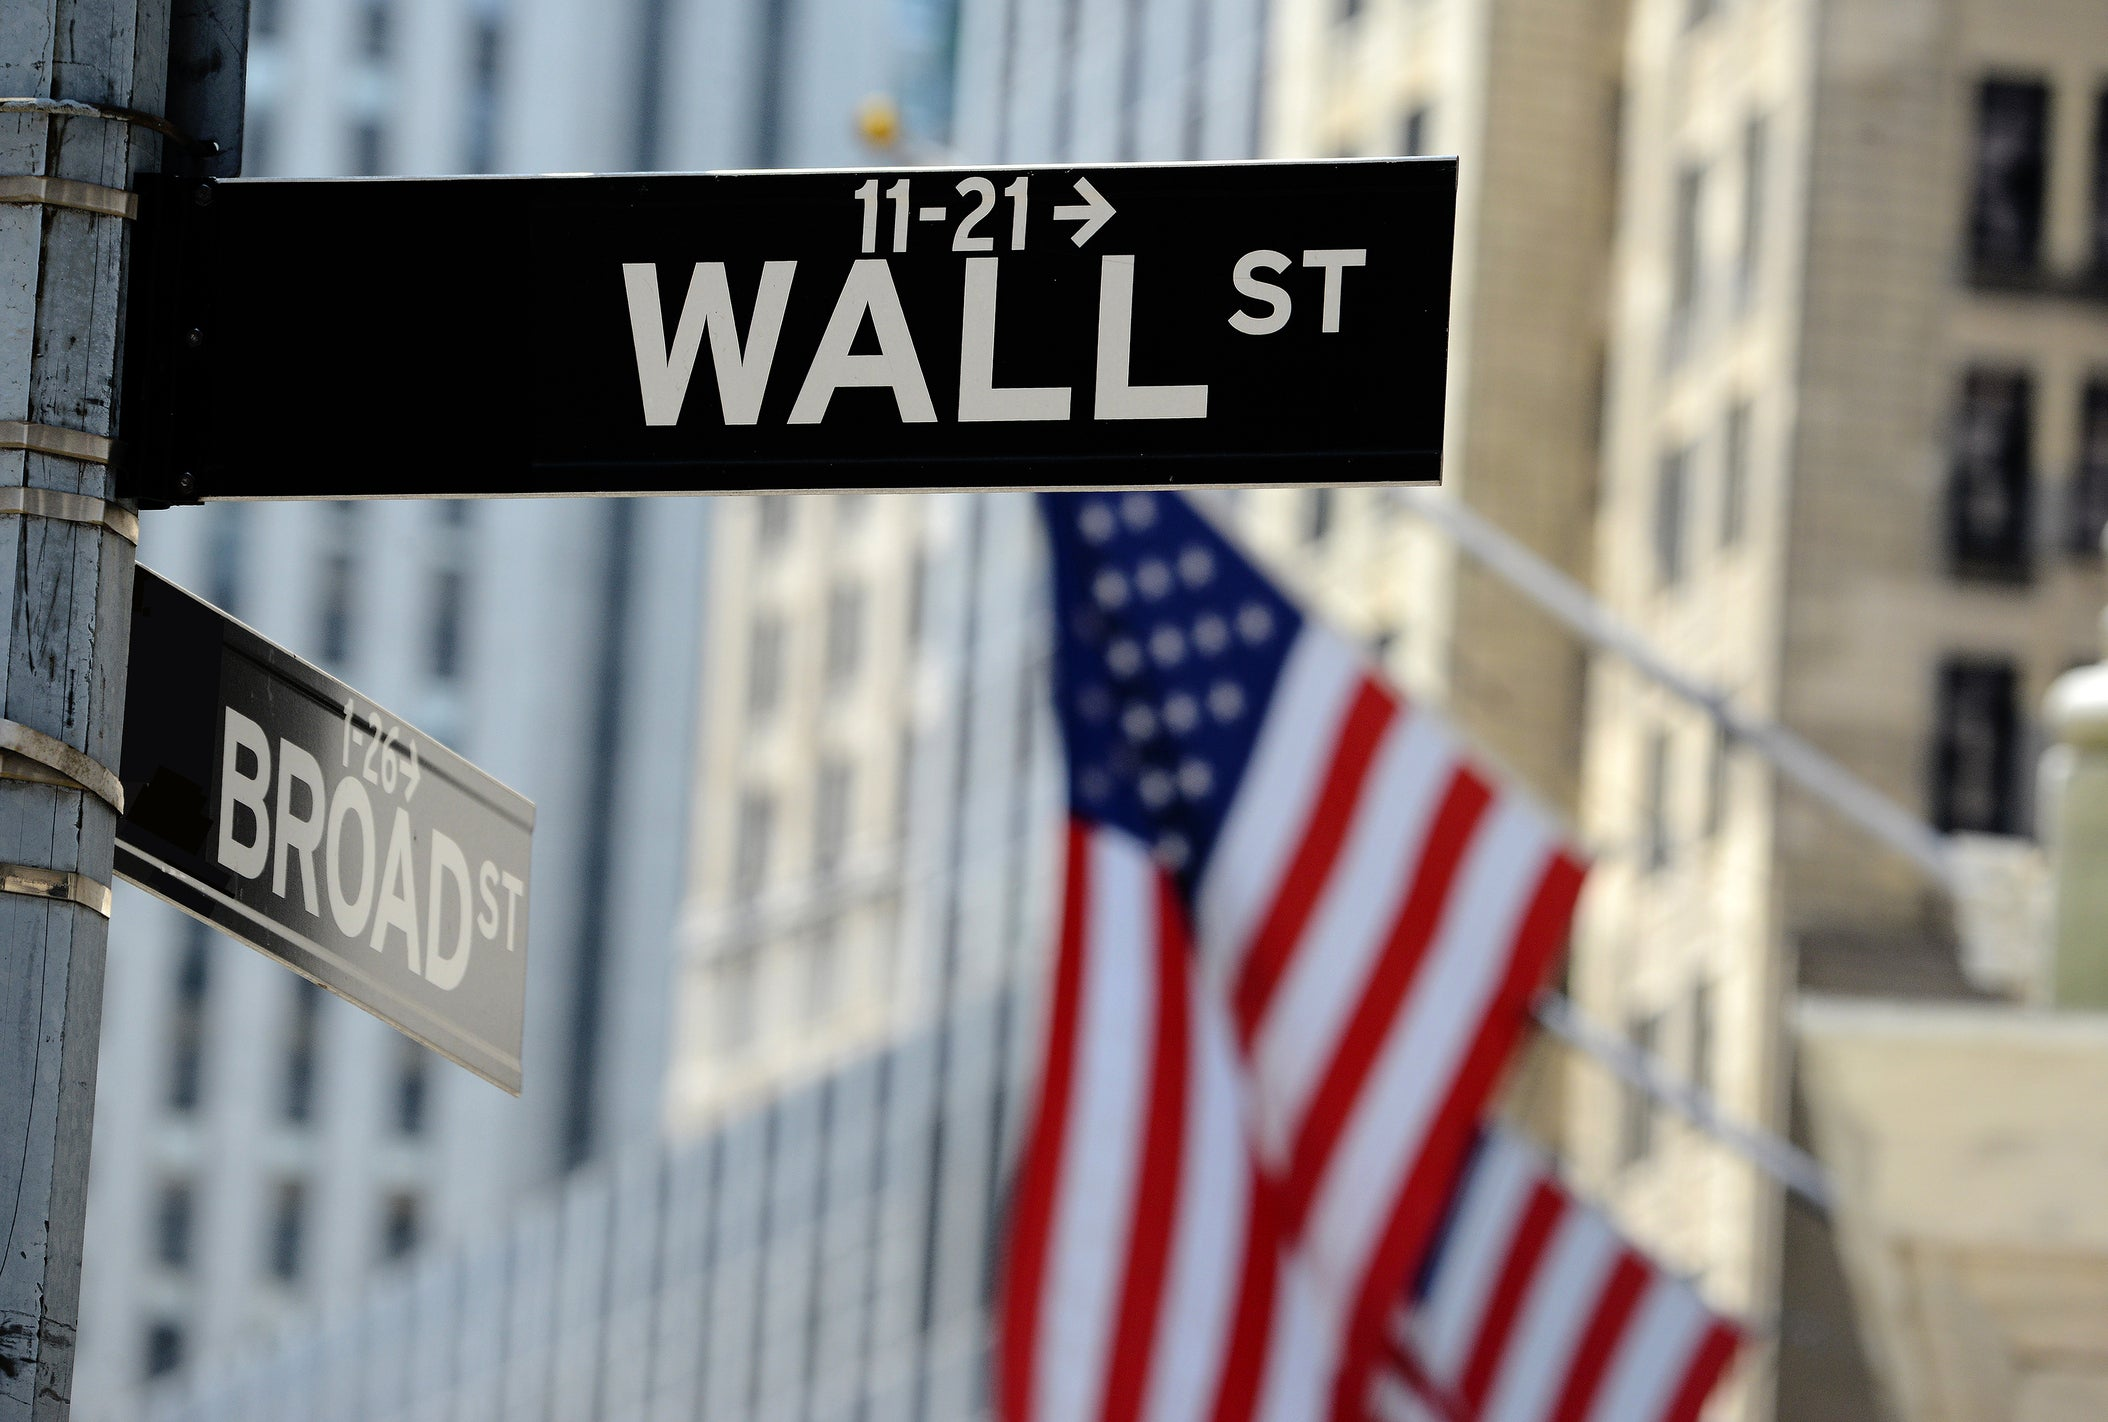 Wall Street street sign with American flags in the background